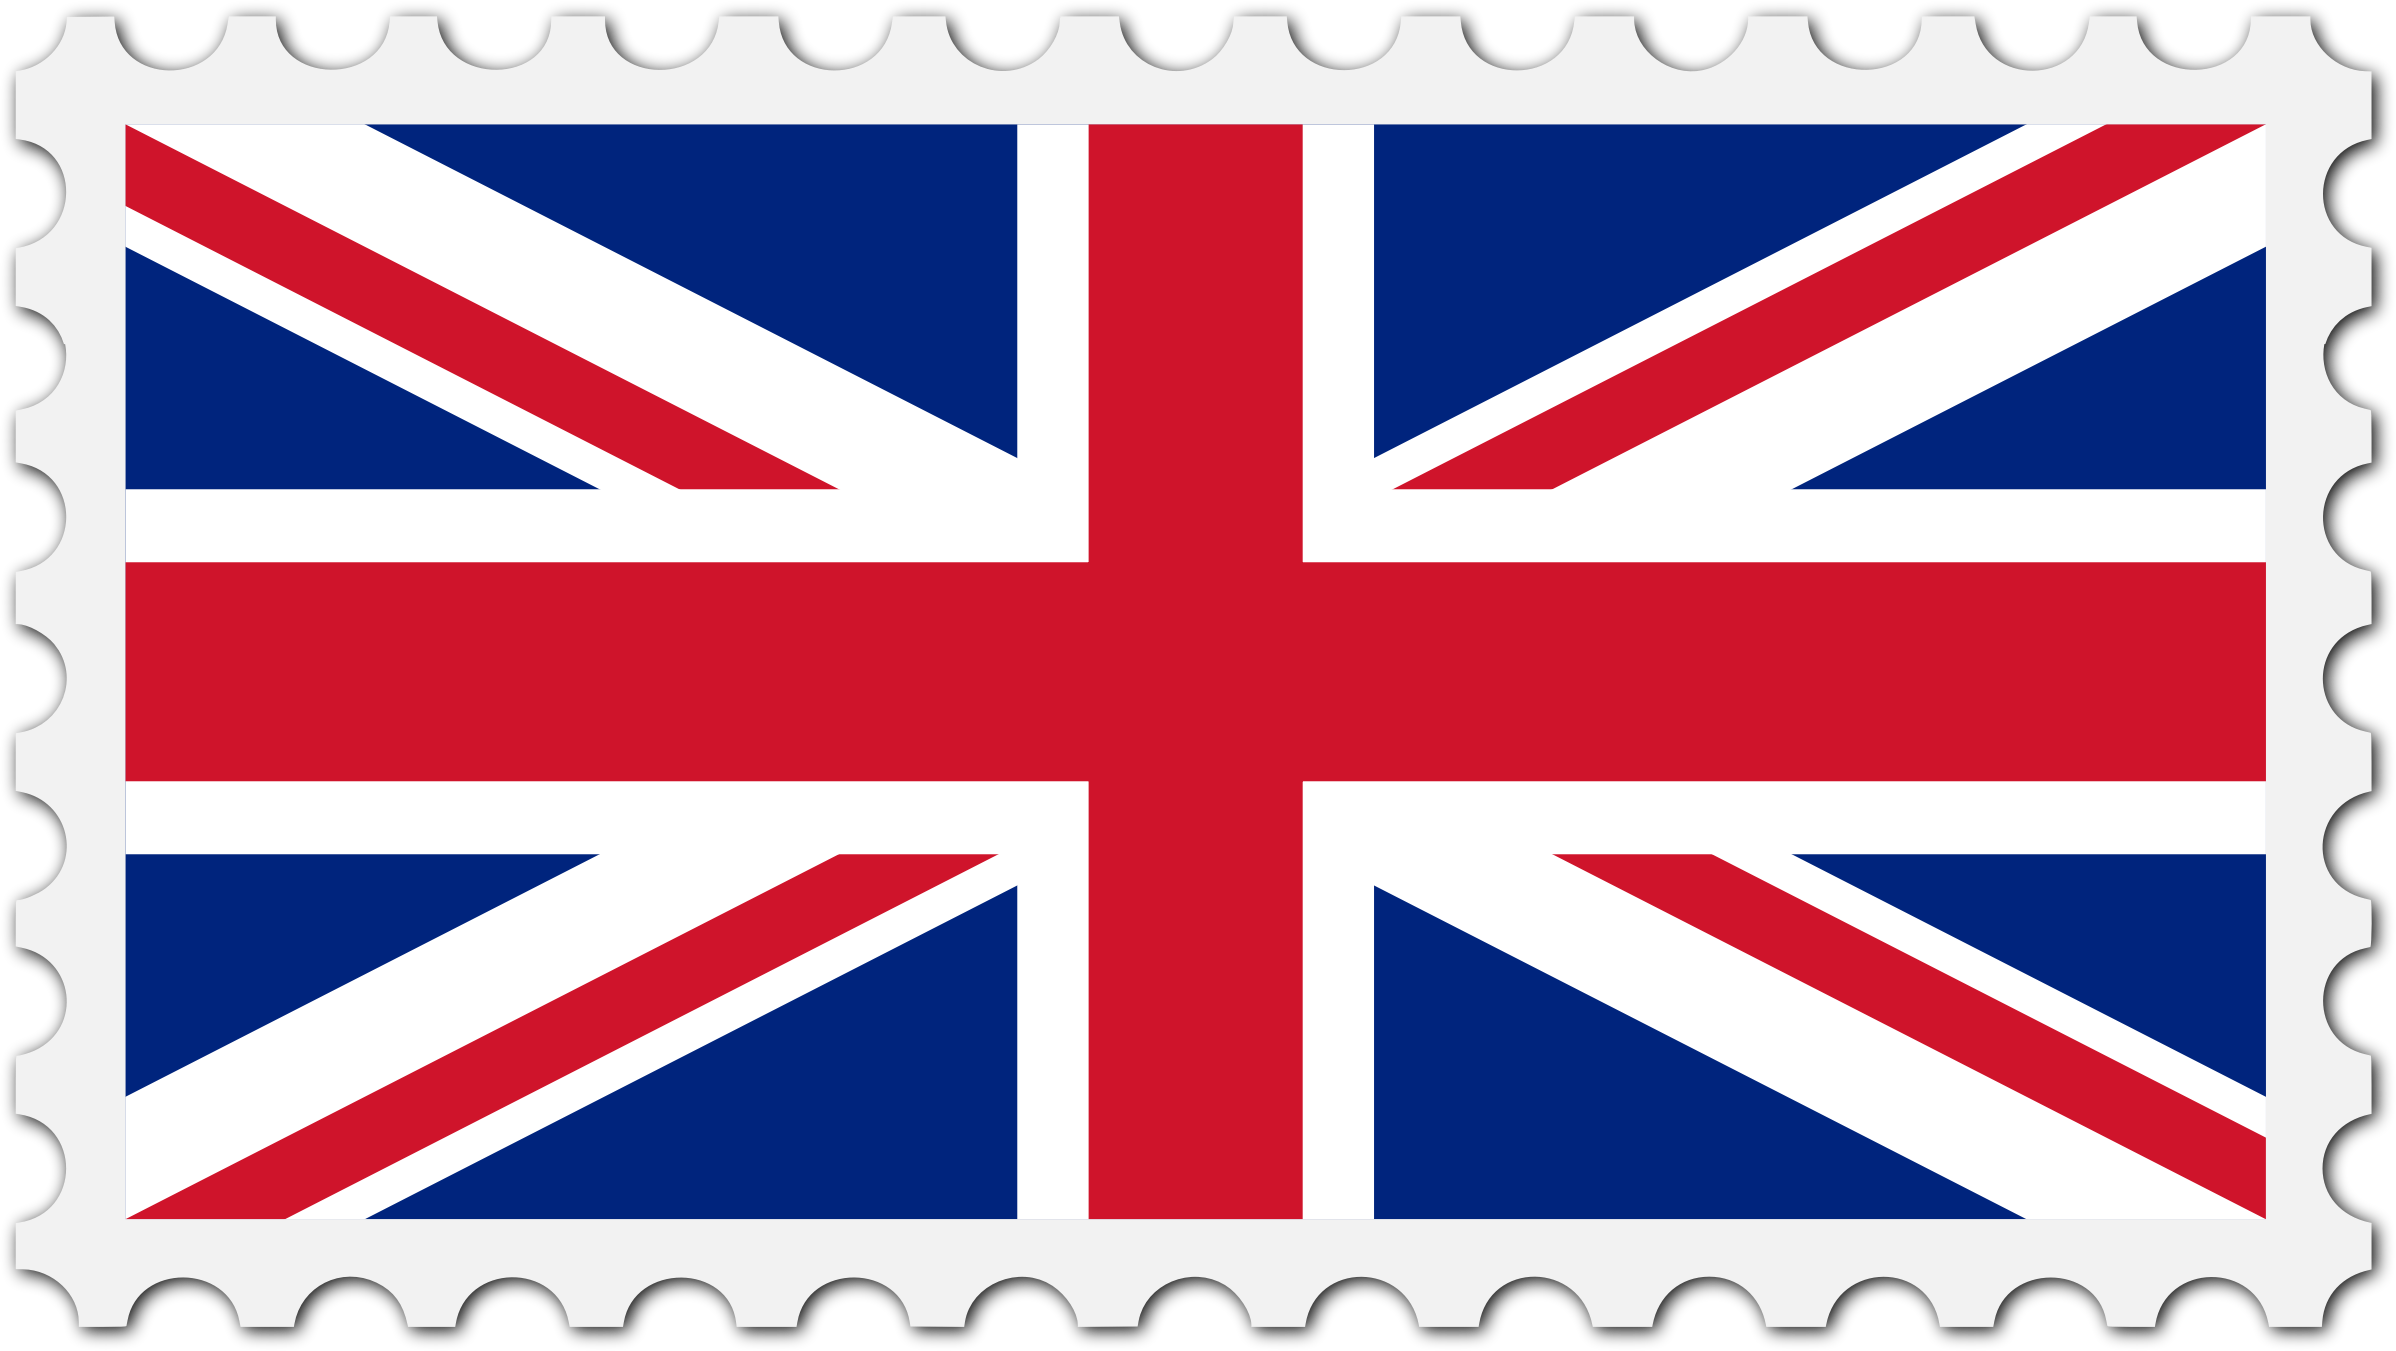 United Kingdom flag stamp by Firkin